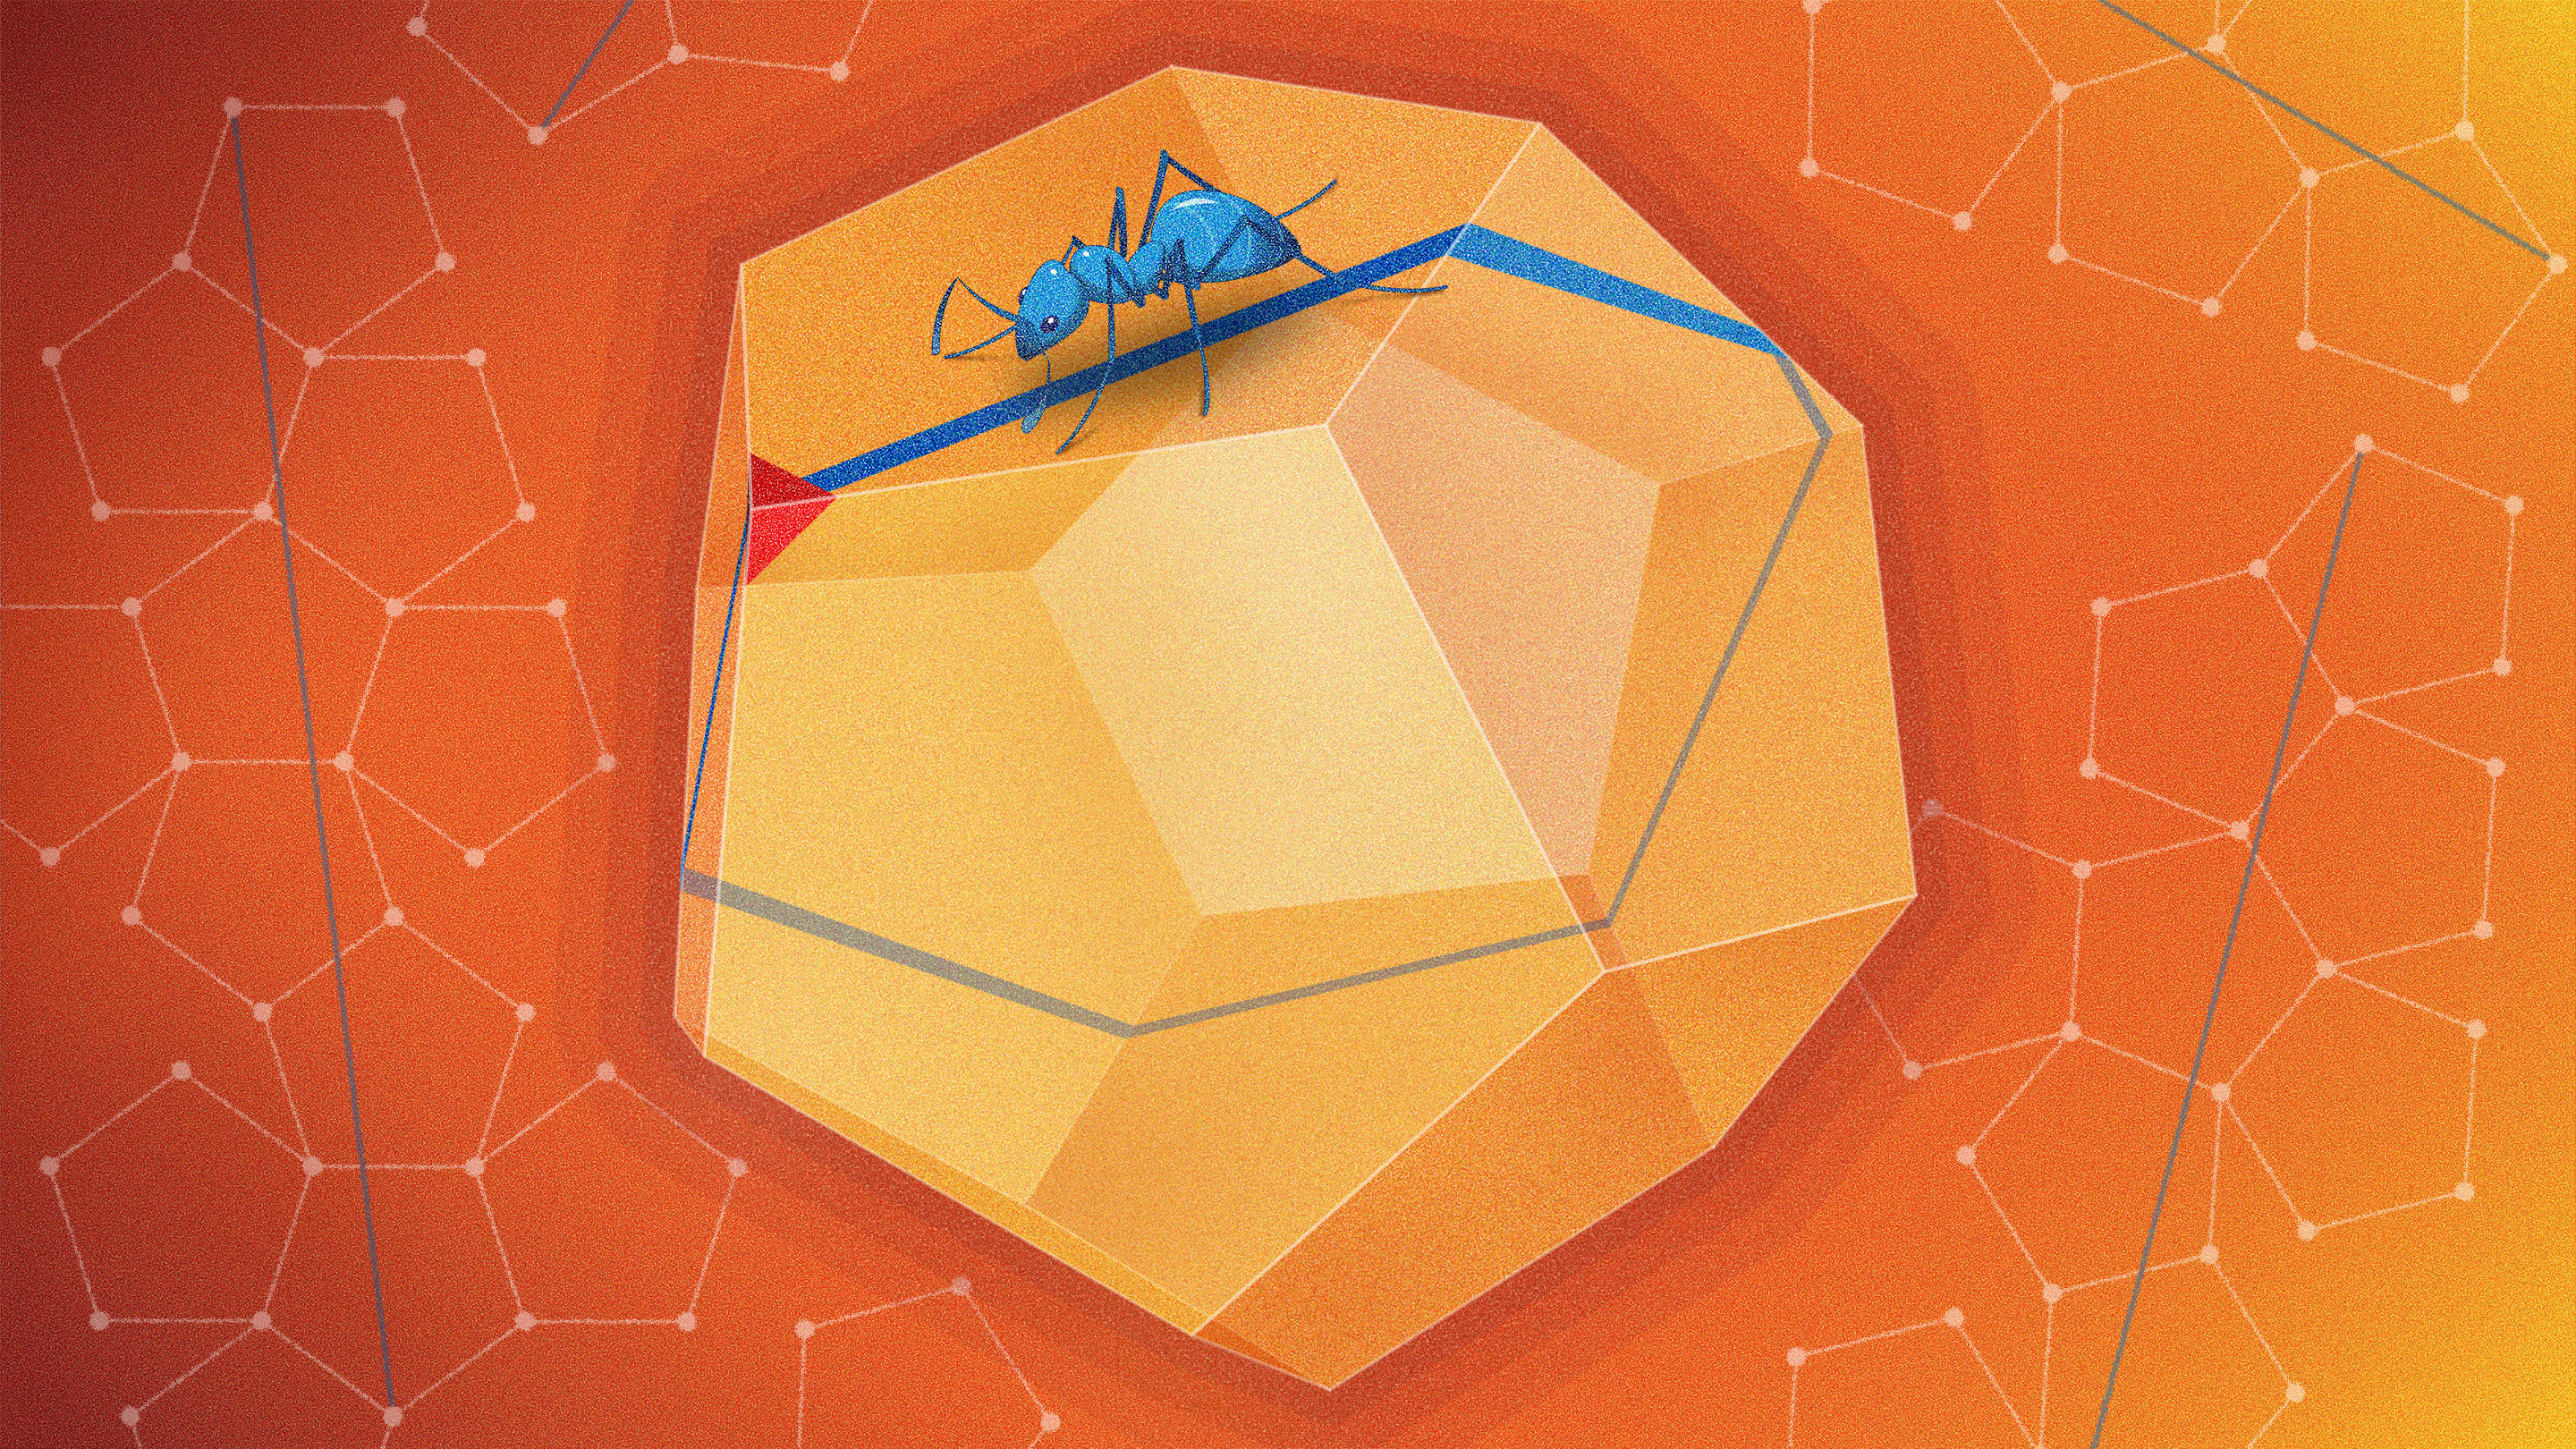 An illustration of an ant walking in a straight line around a dodecahedron.